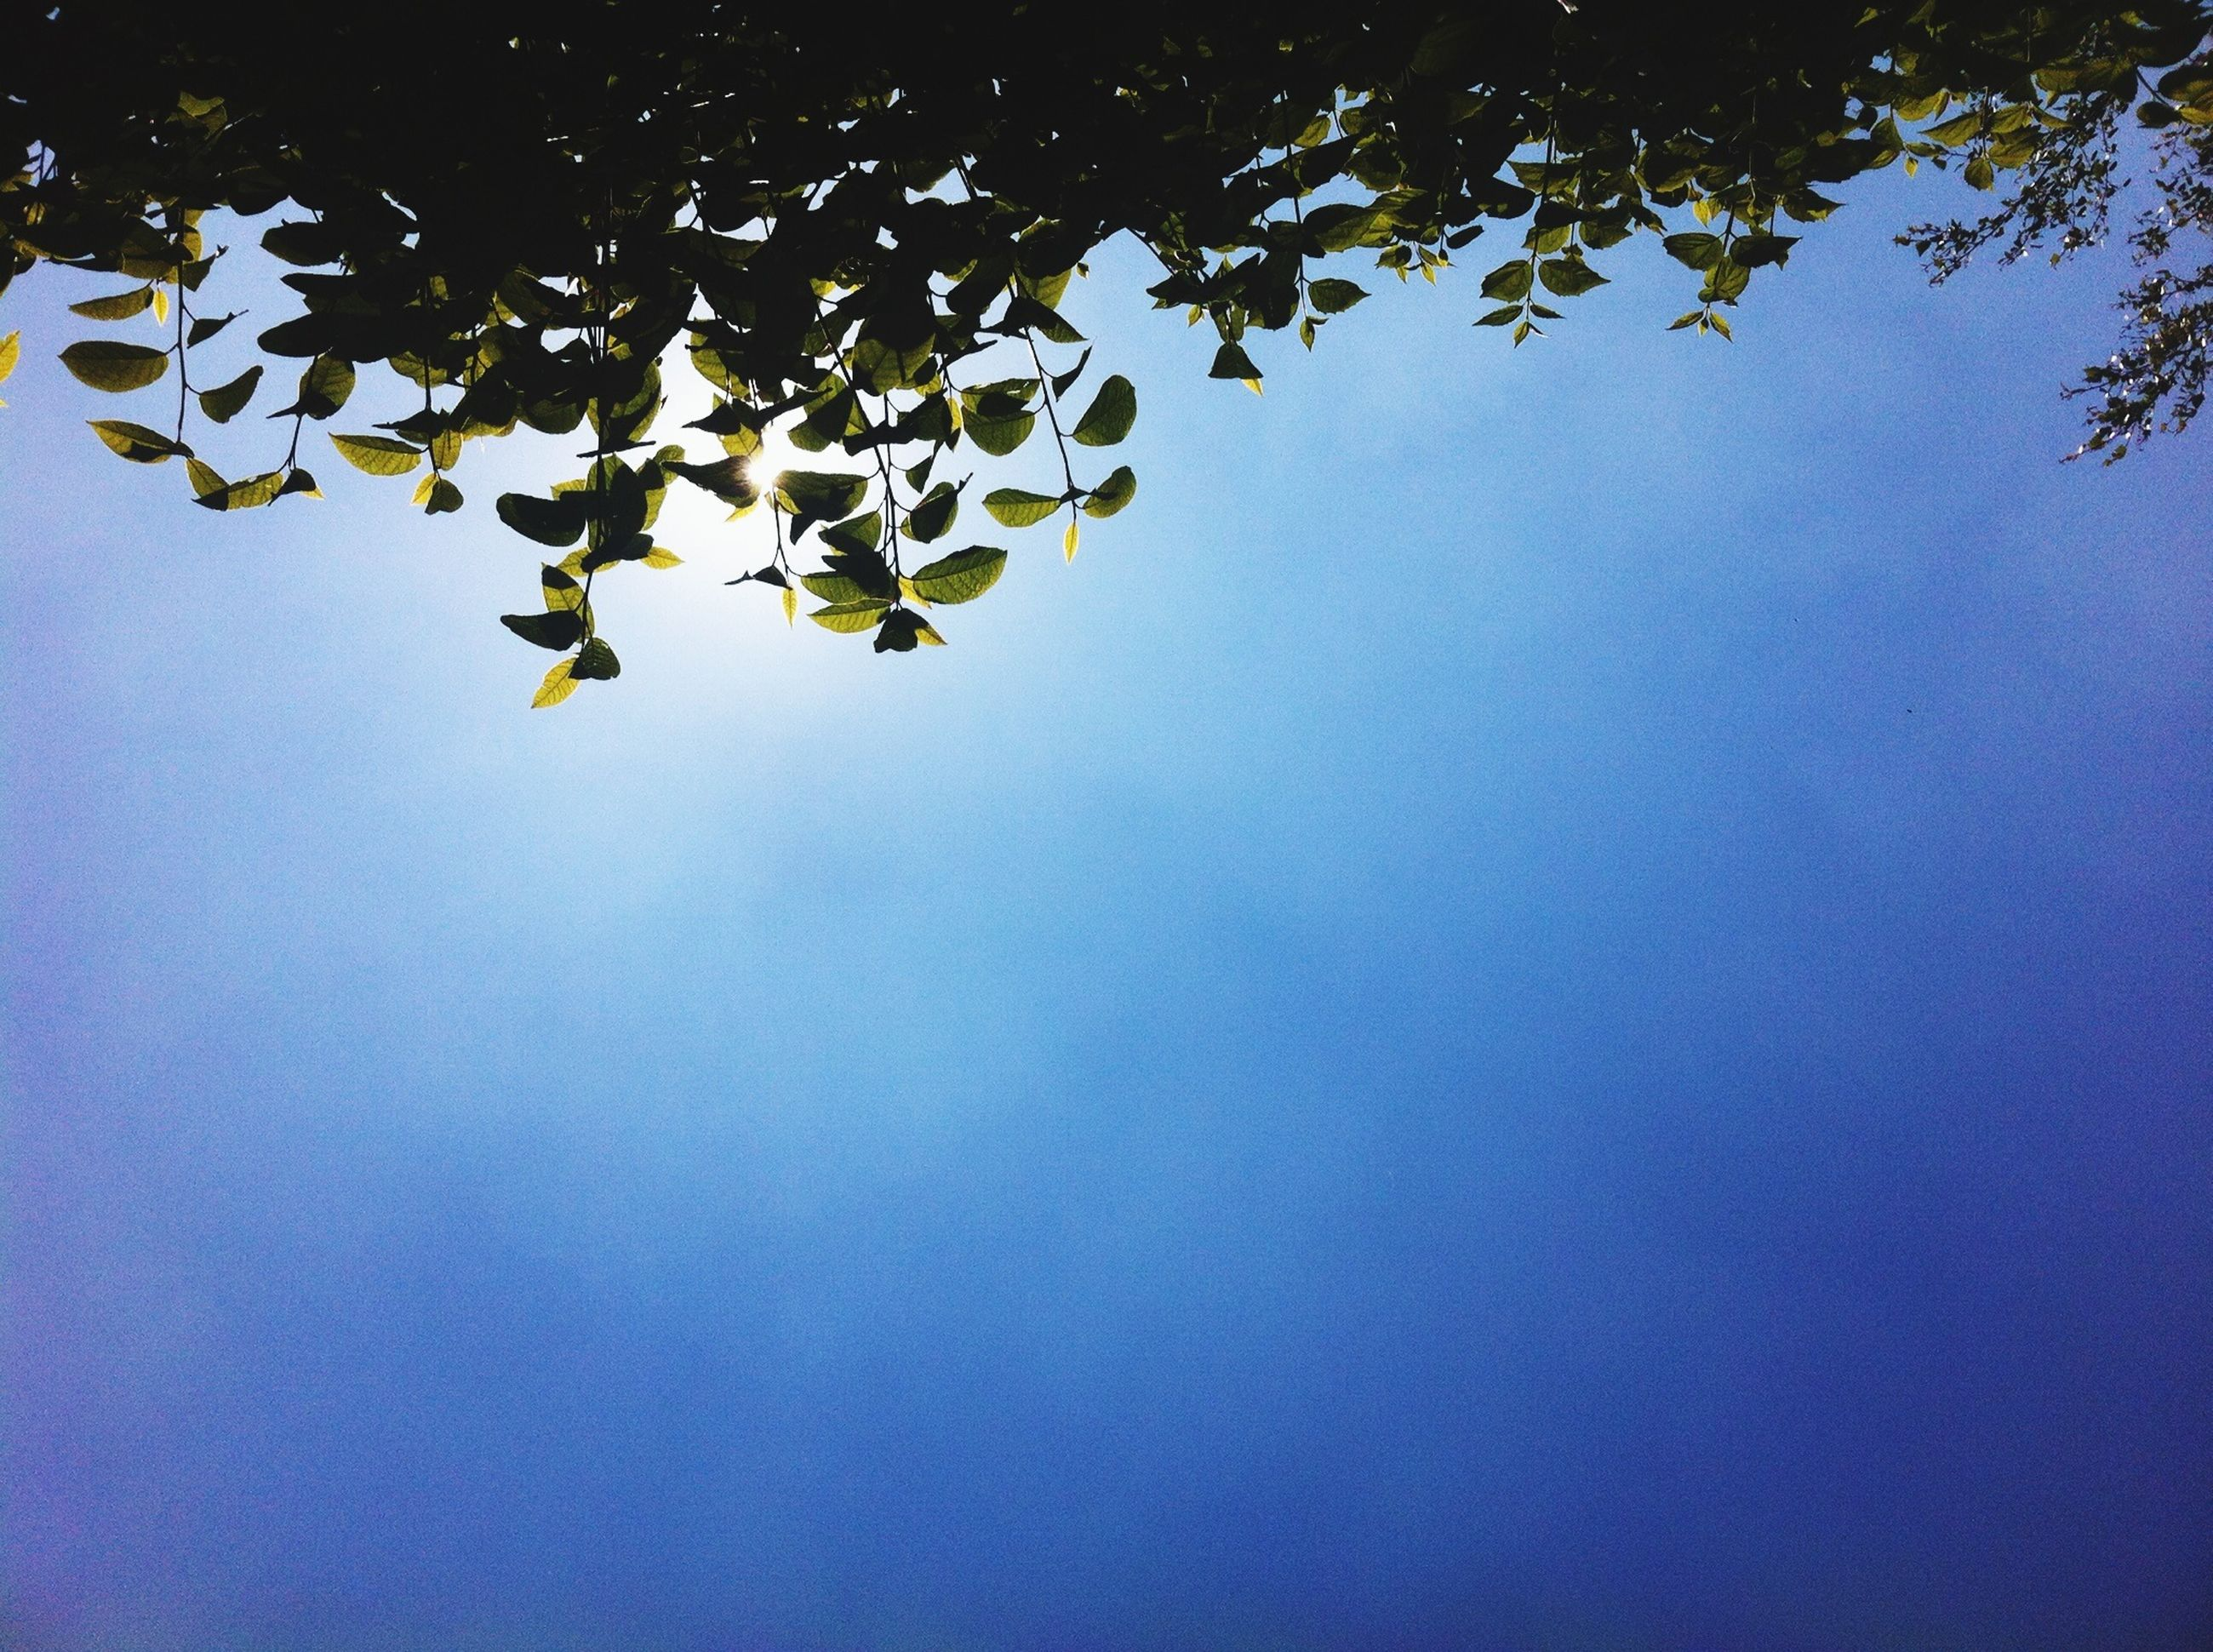 low angle view, tree, growth, clear sky, branch, nature, leaf, beauty in nature, copy space, tranquility, sky, no people, outdoors, blue, day, sunlight, plant, scenics, tranquil scene, silhouette